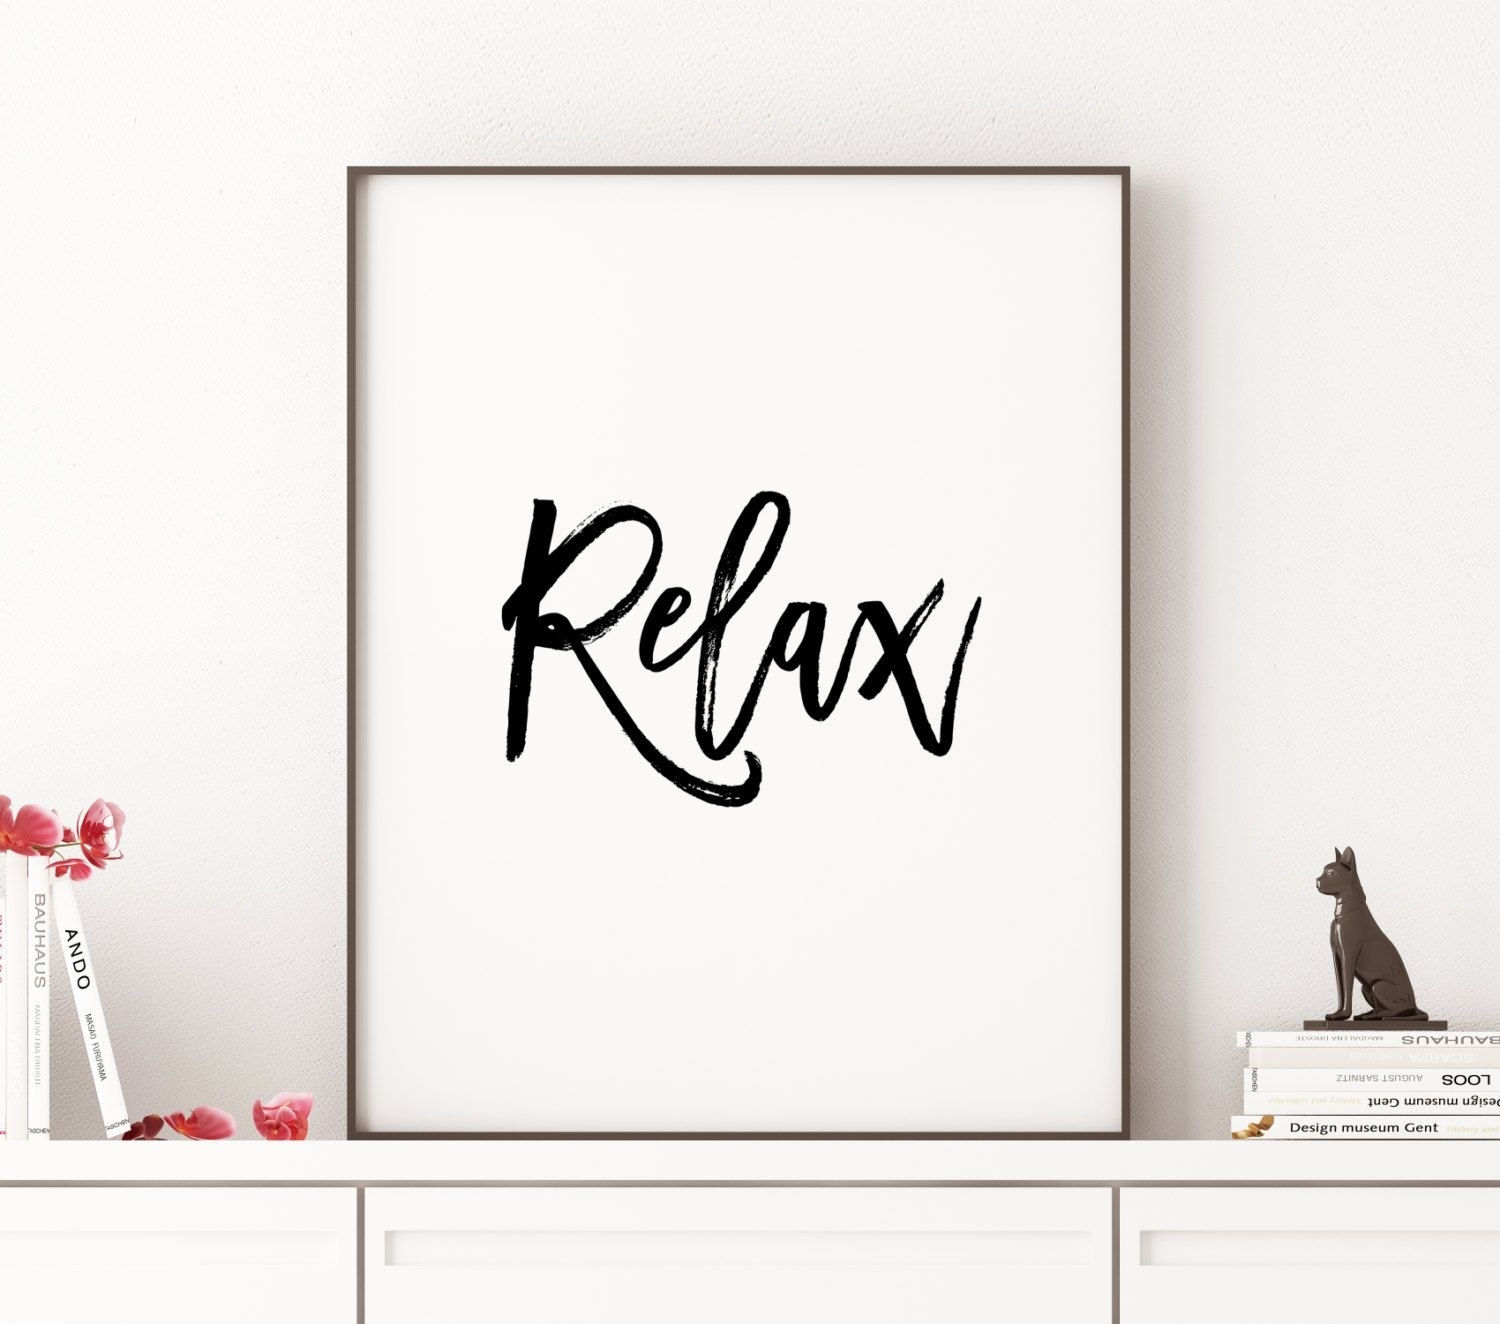 Printable Art Relax Office Wall Art Typographythecasanova In Latest Relax Wall Art (Gallery 20 of 20)